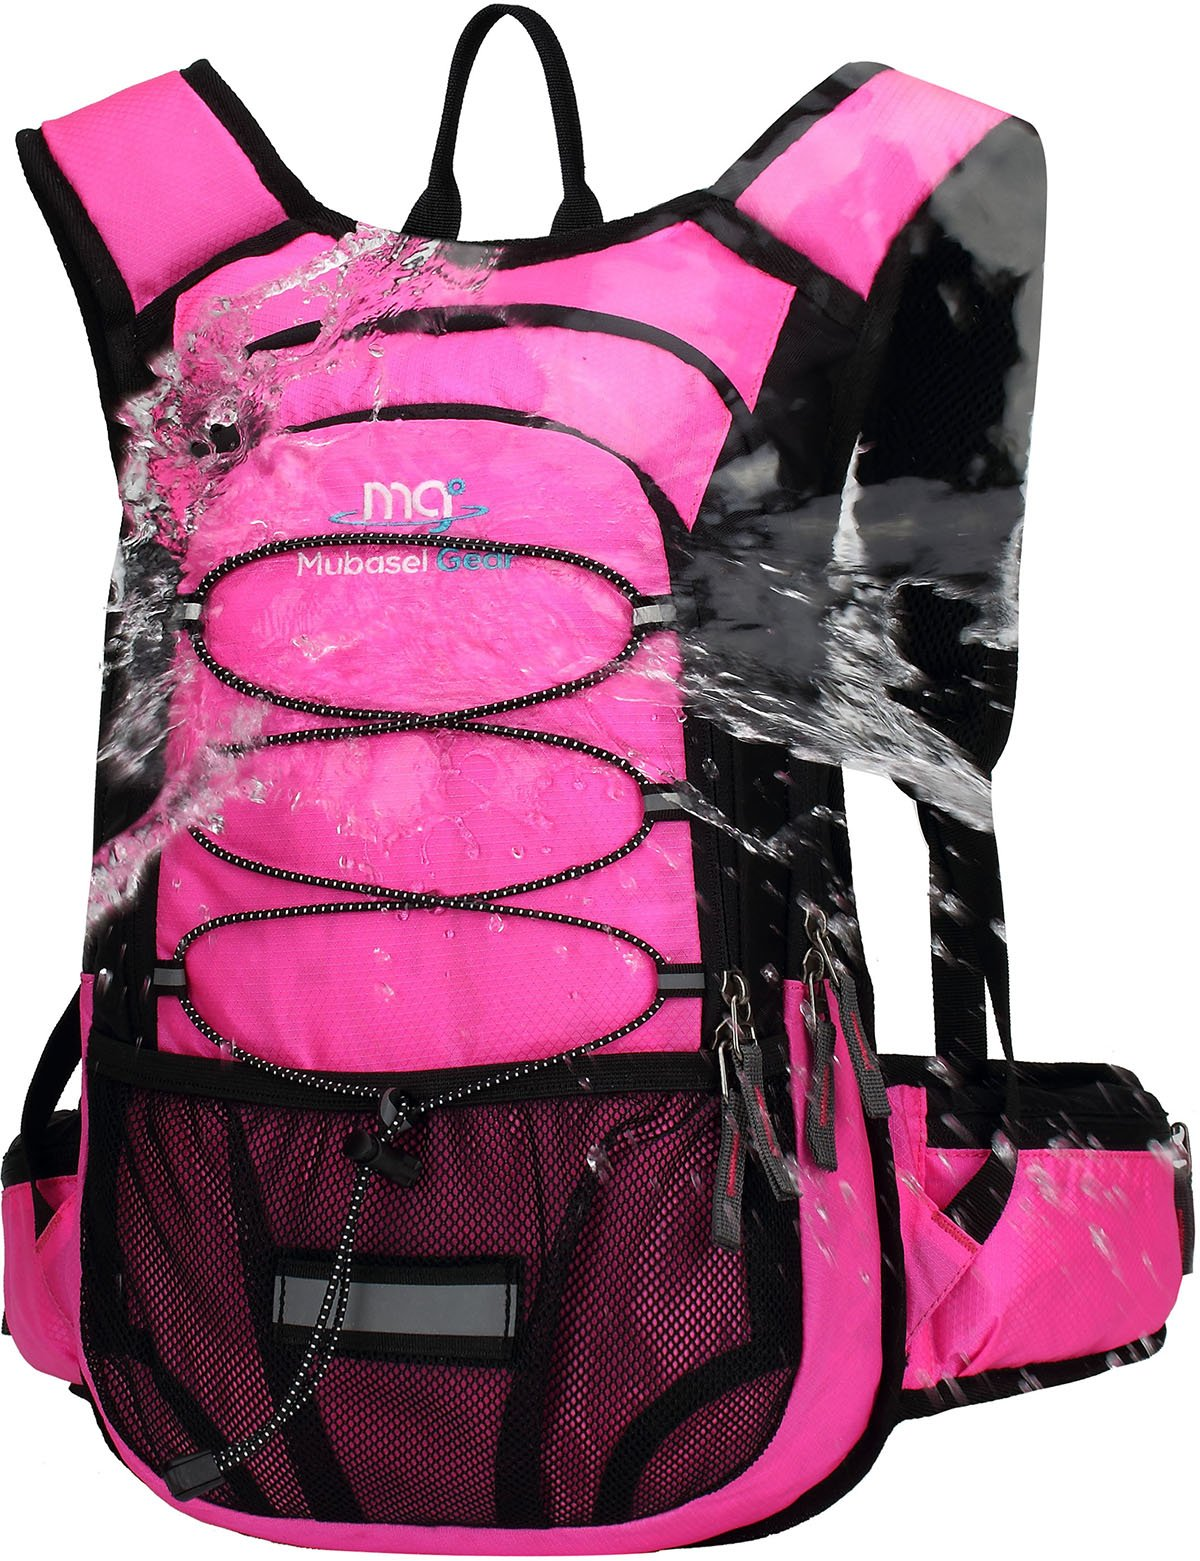 Mubasel Gear Insulated Hydration Backpack Pack with 2L BPA Free Bladder - Keeps Liquid Cool up to 4 Hours - for Running, Hiking, Cycling, Camping (Fushia) by Mubasel Gear